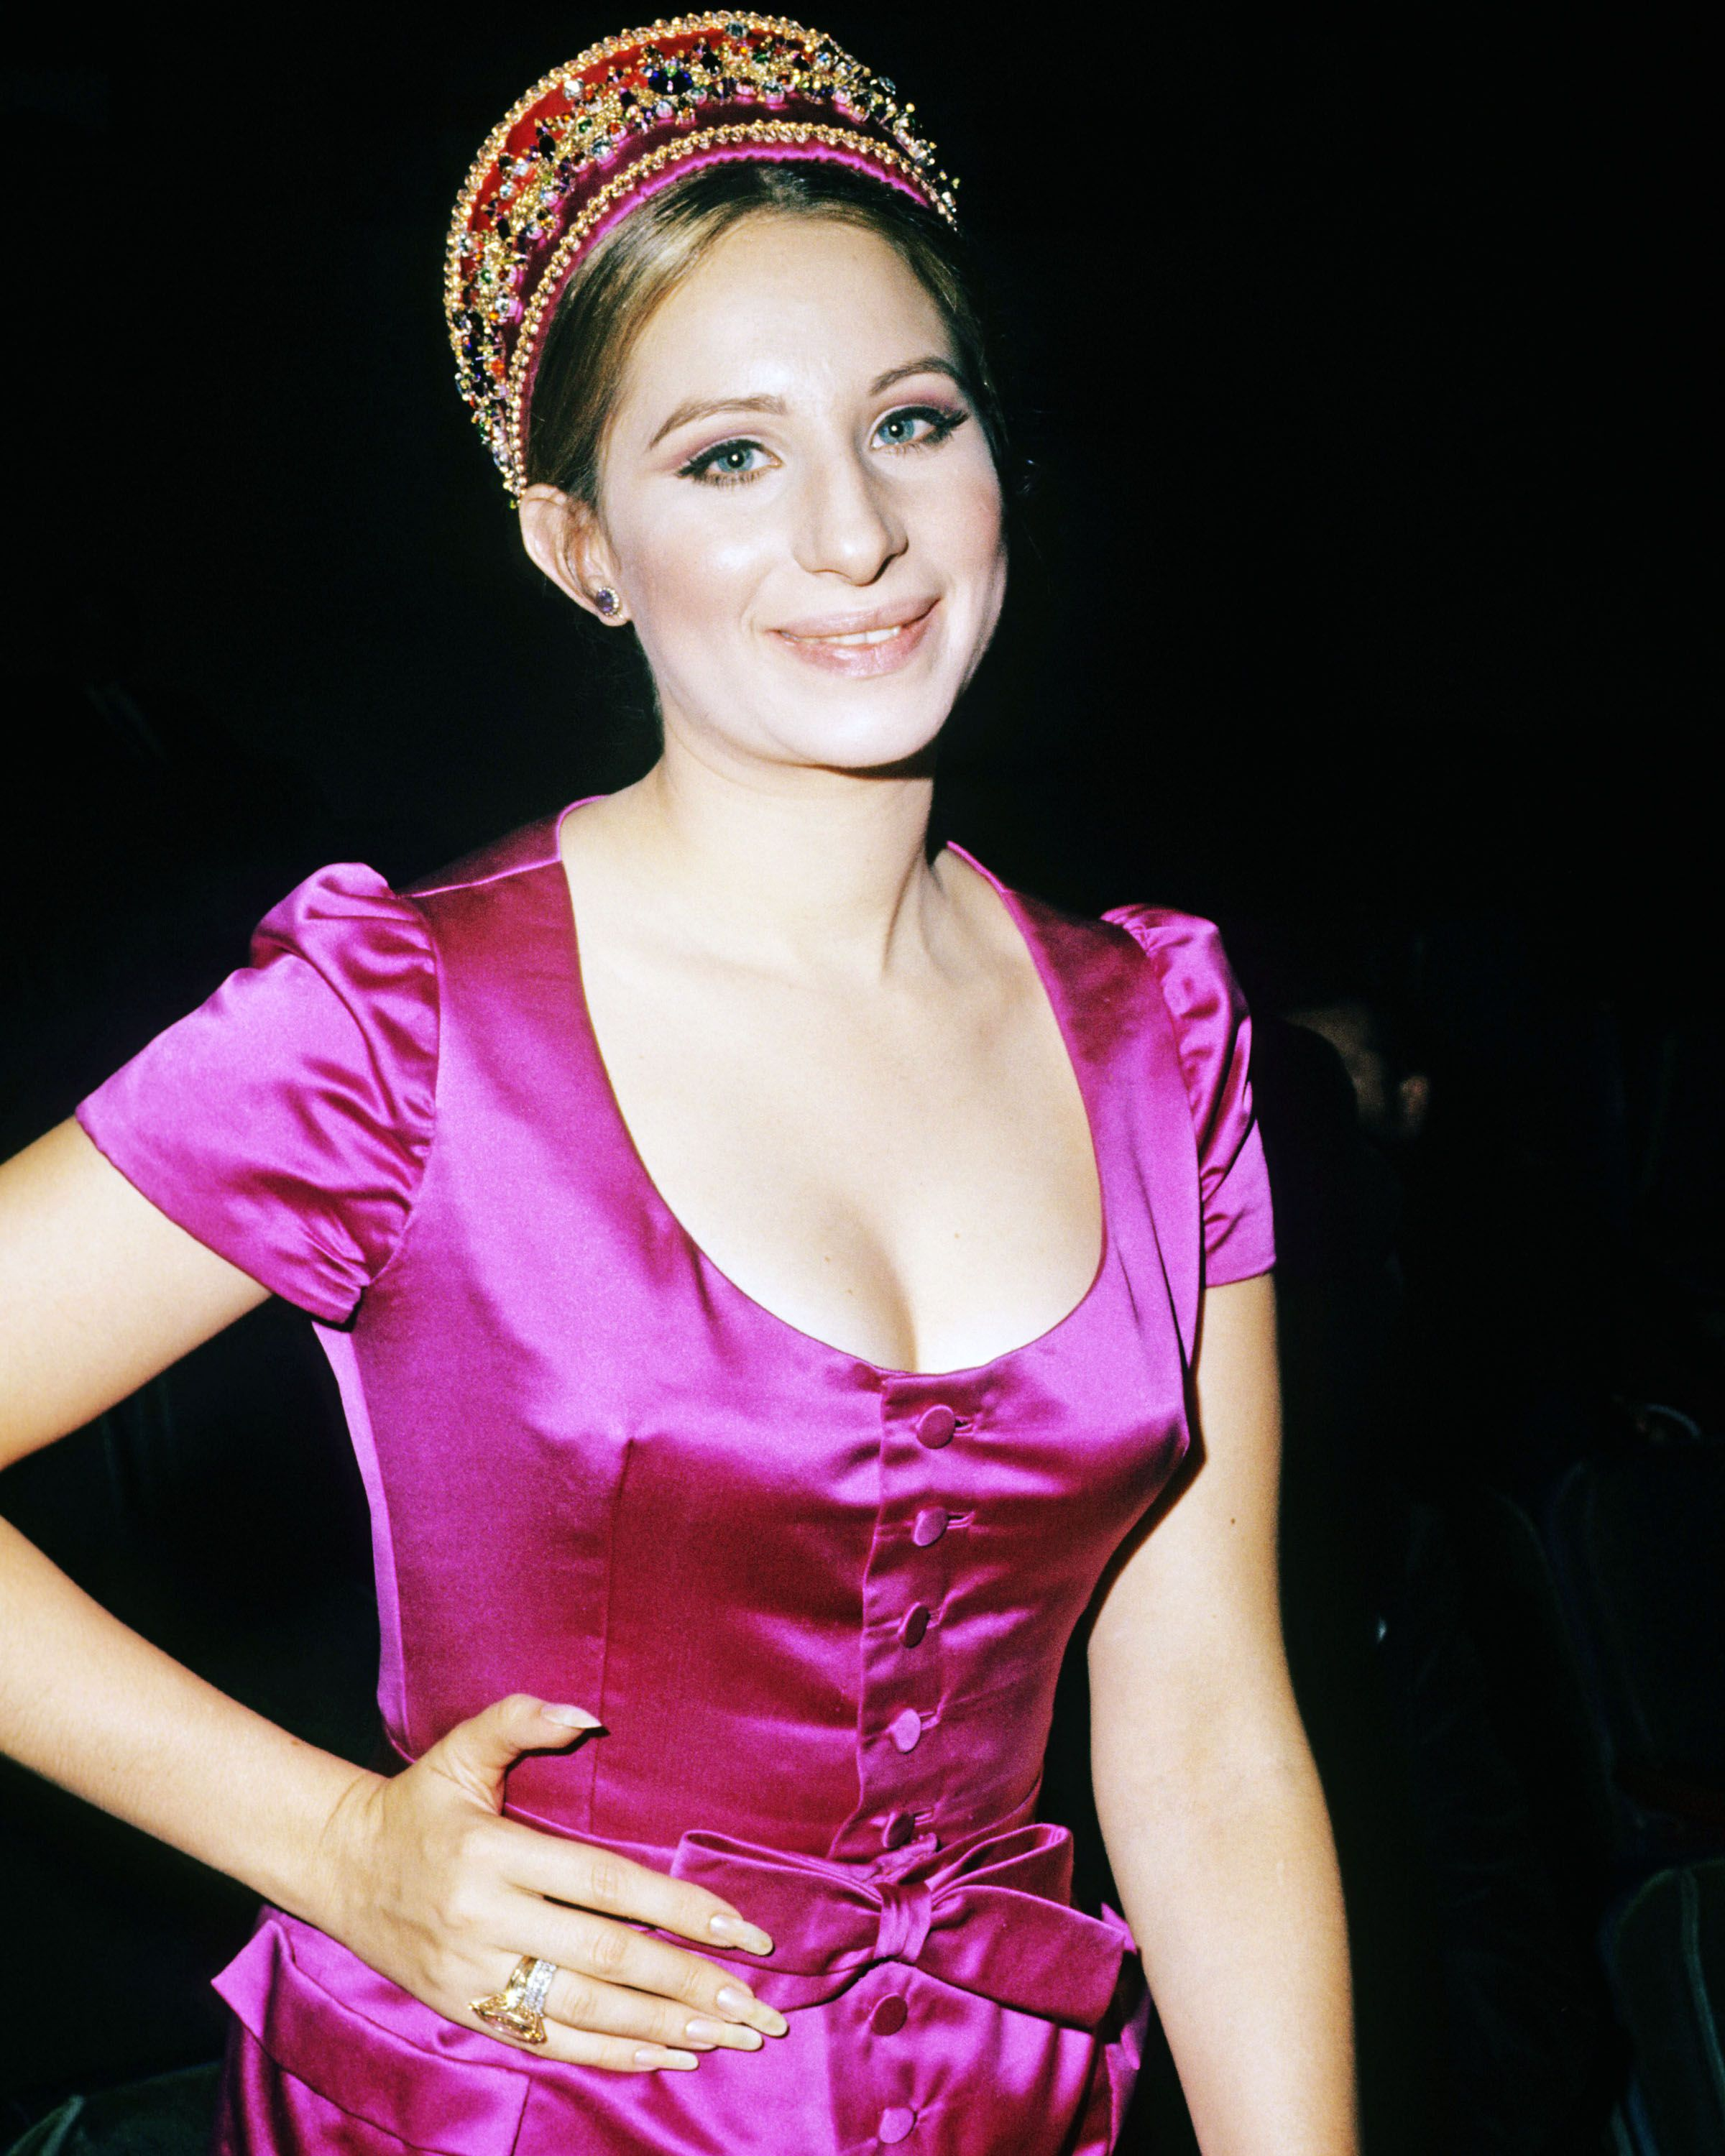 barbra+Streisand+fashion | Barbra Streisand: Broadway and Fashion Icon